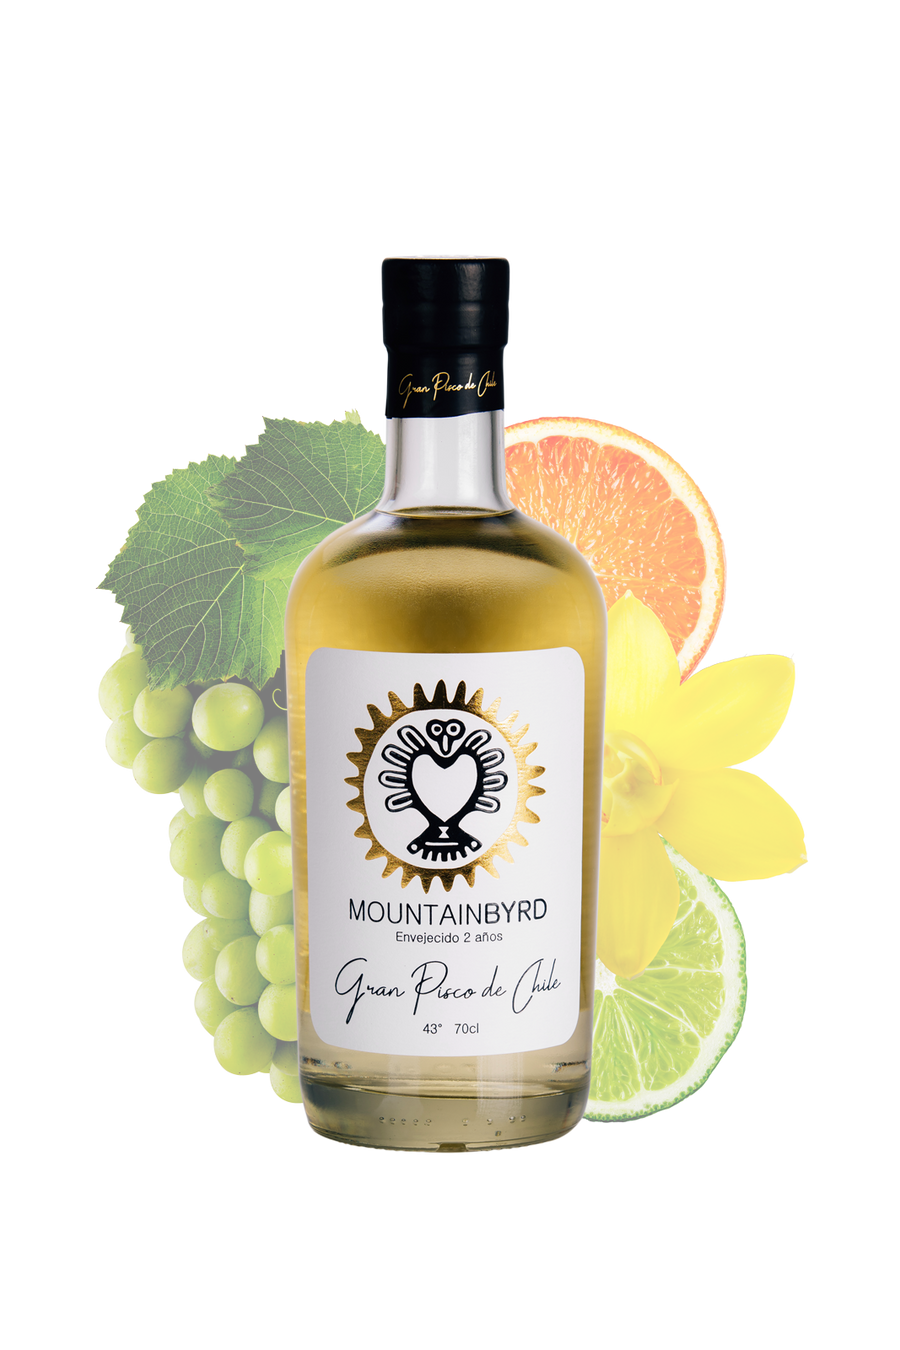 mountainbyrd Gran Pisco de Chile, Envejecido 2 años, 700ml